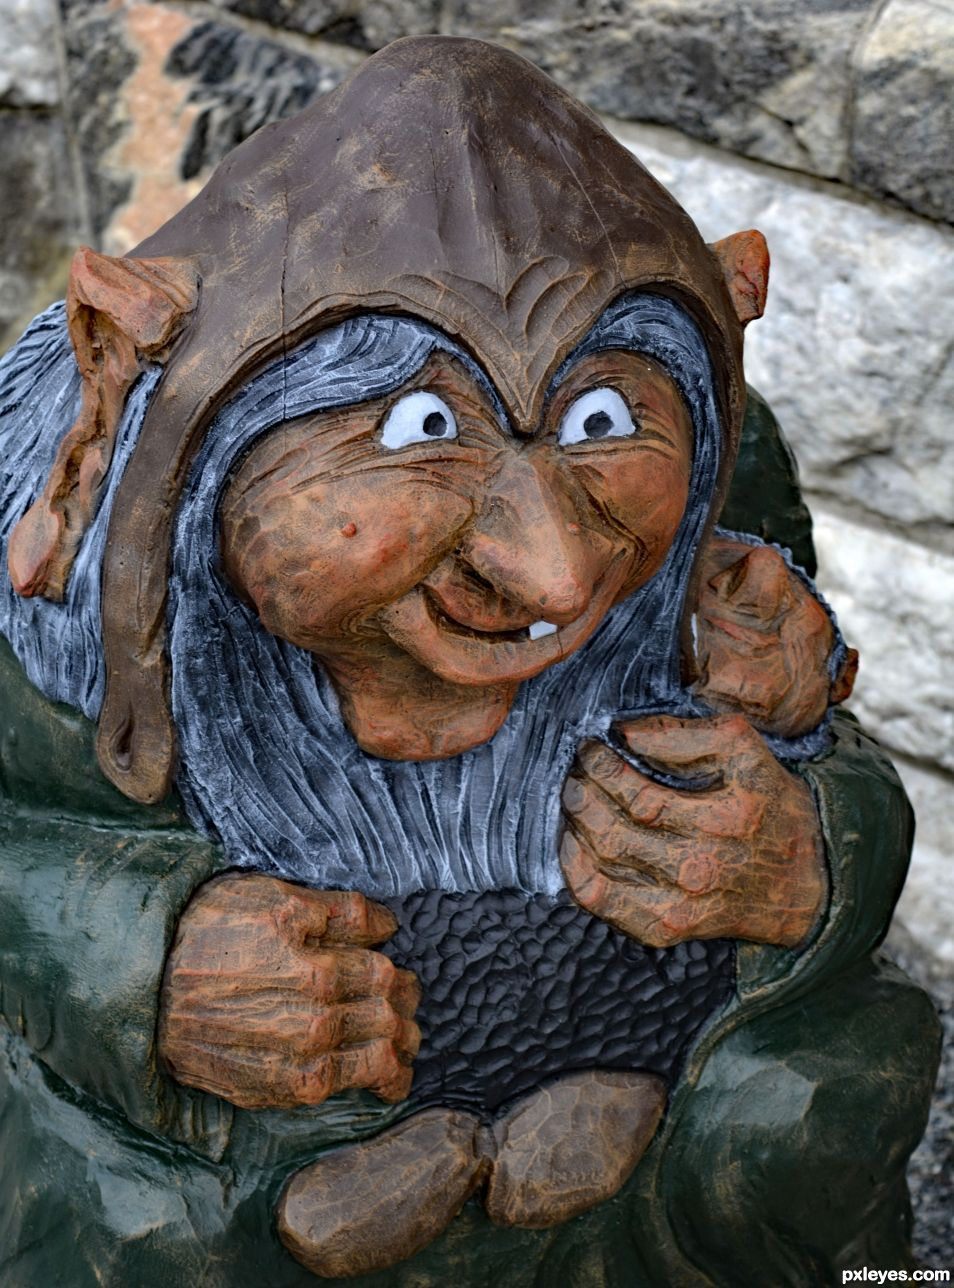 T is for Troll